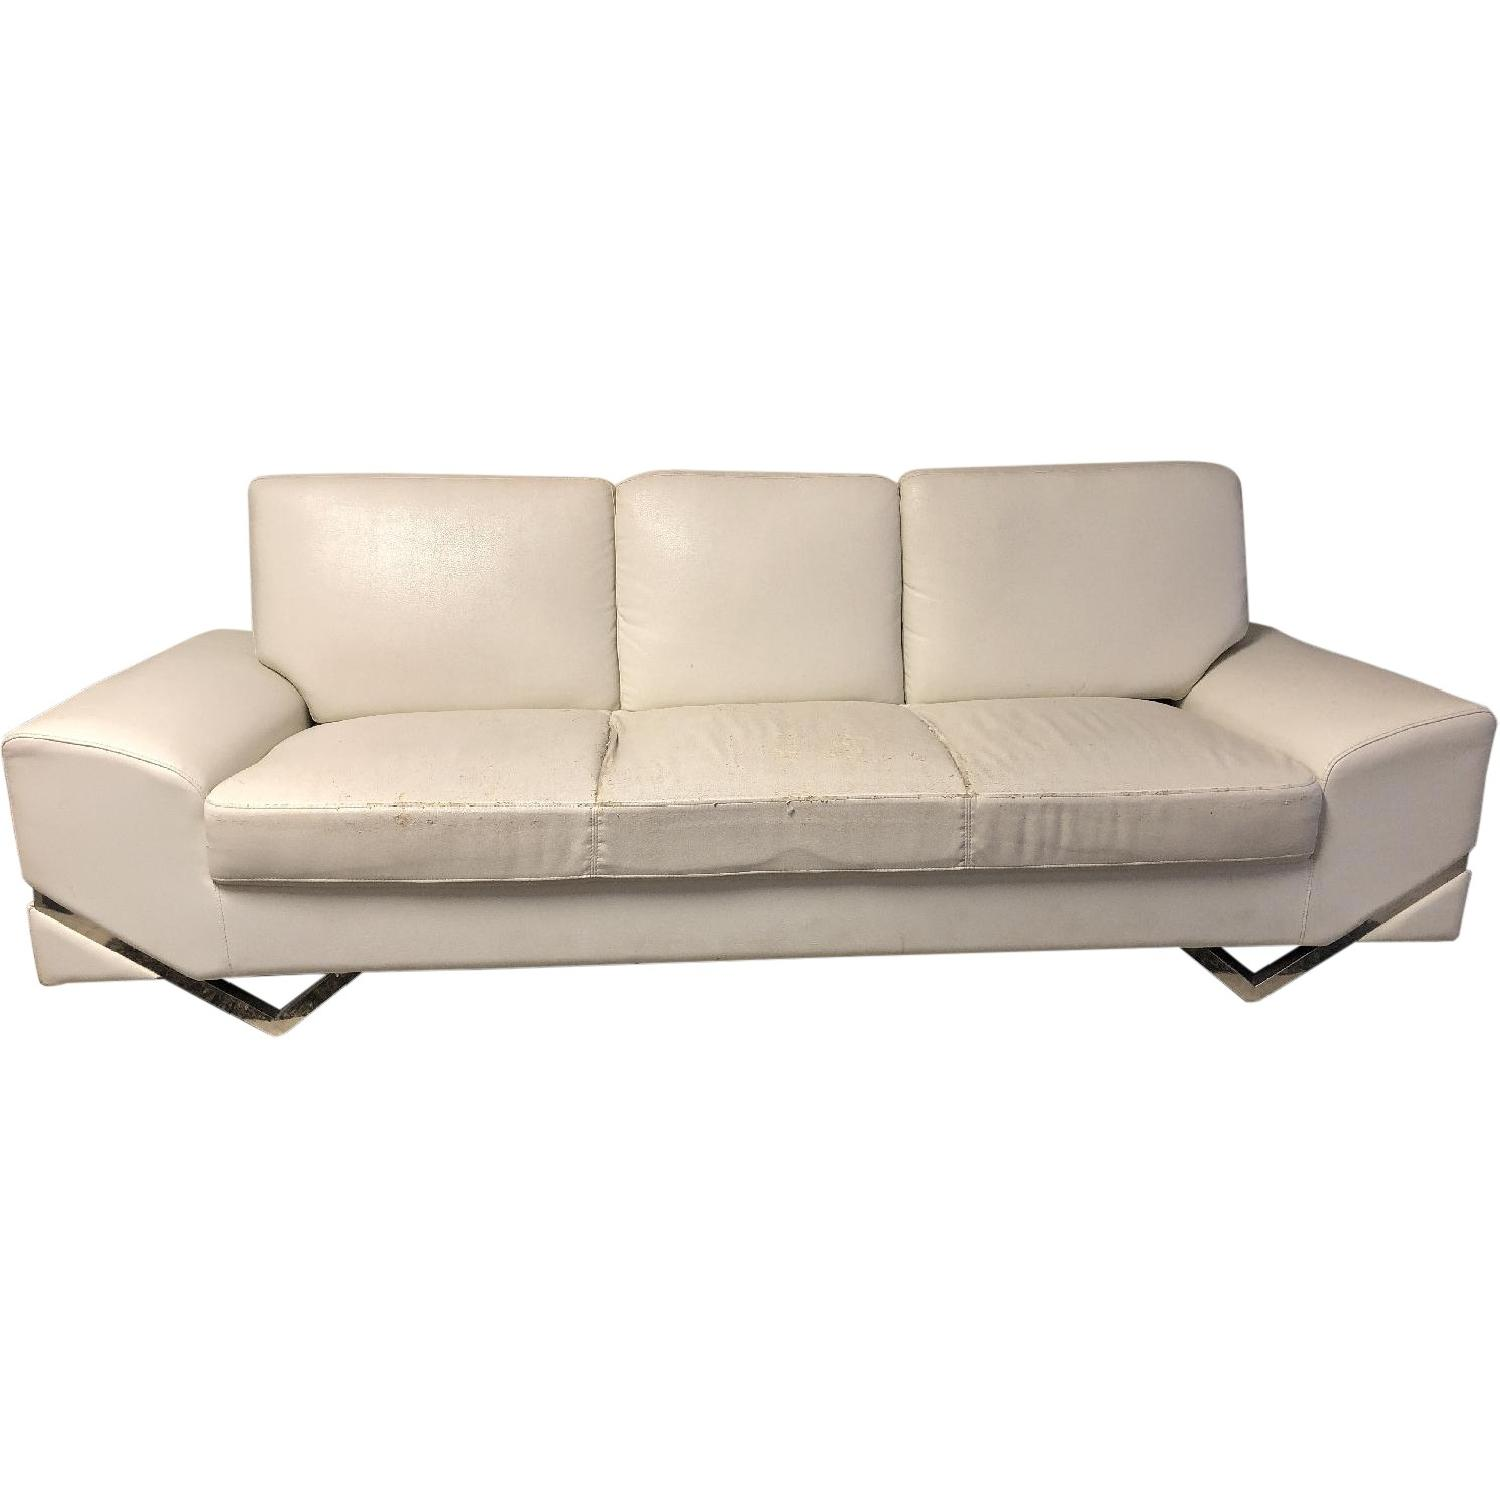 American Eagle Furniture Faux Leather 3 Seater Sofa ...